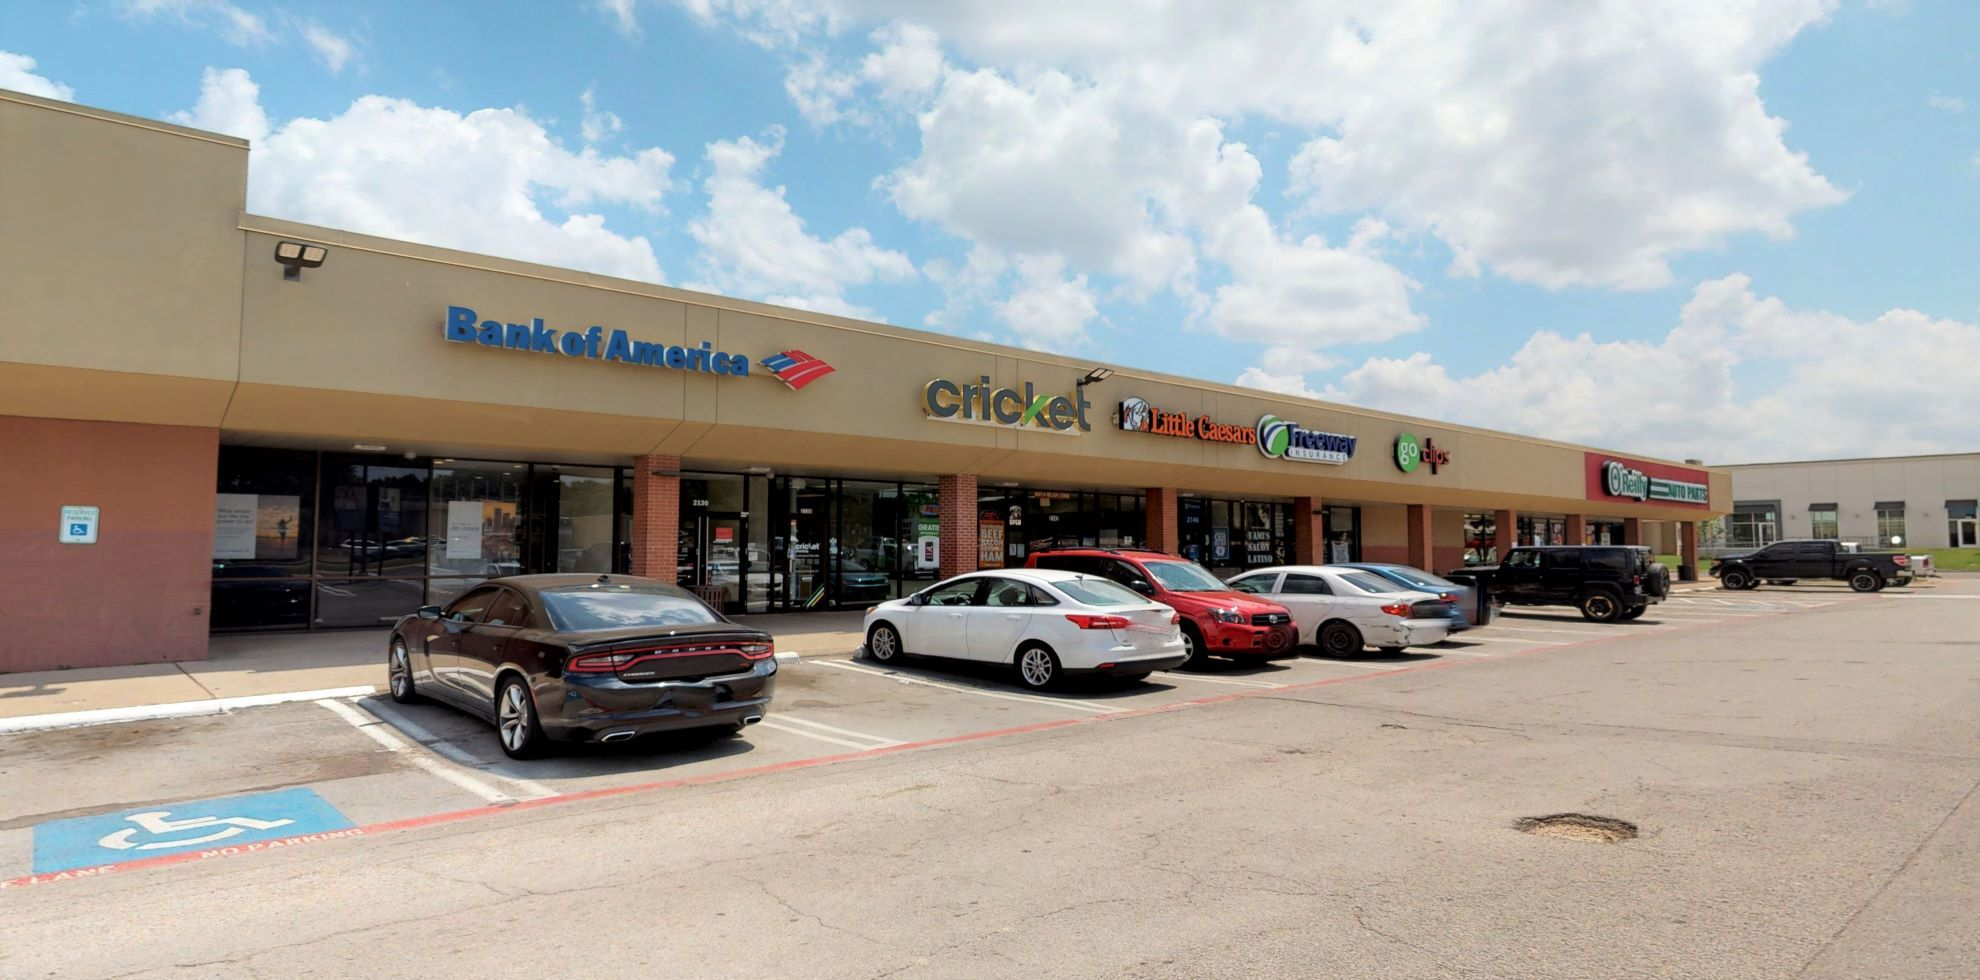 Bank of America financial center with drive-thru ATM | 2130 Fort Worth Ave, Dallas, TX 75211